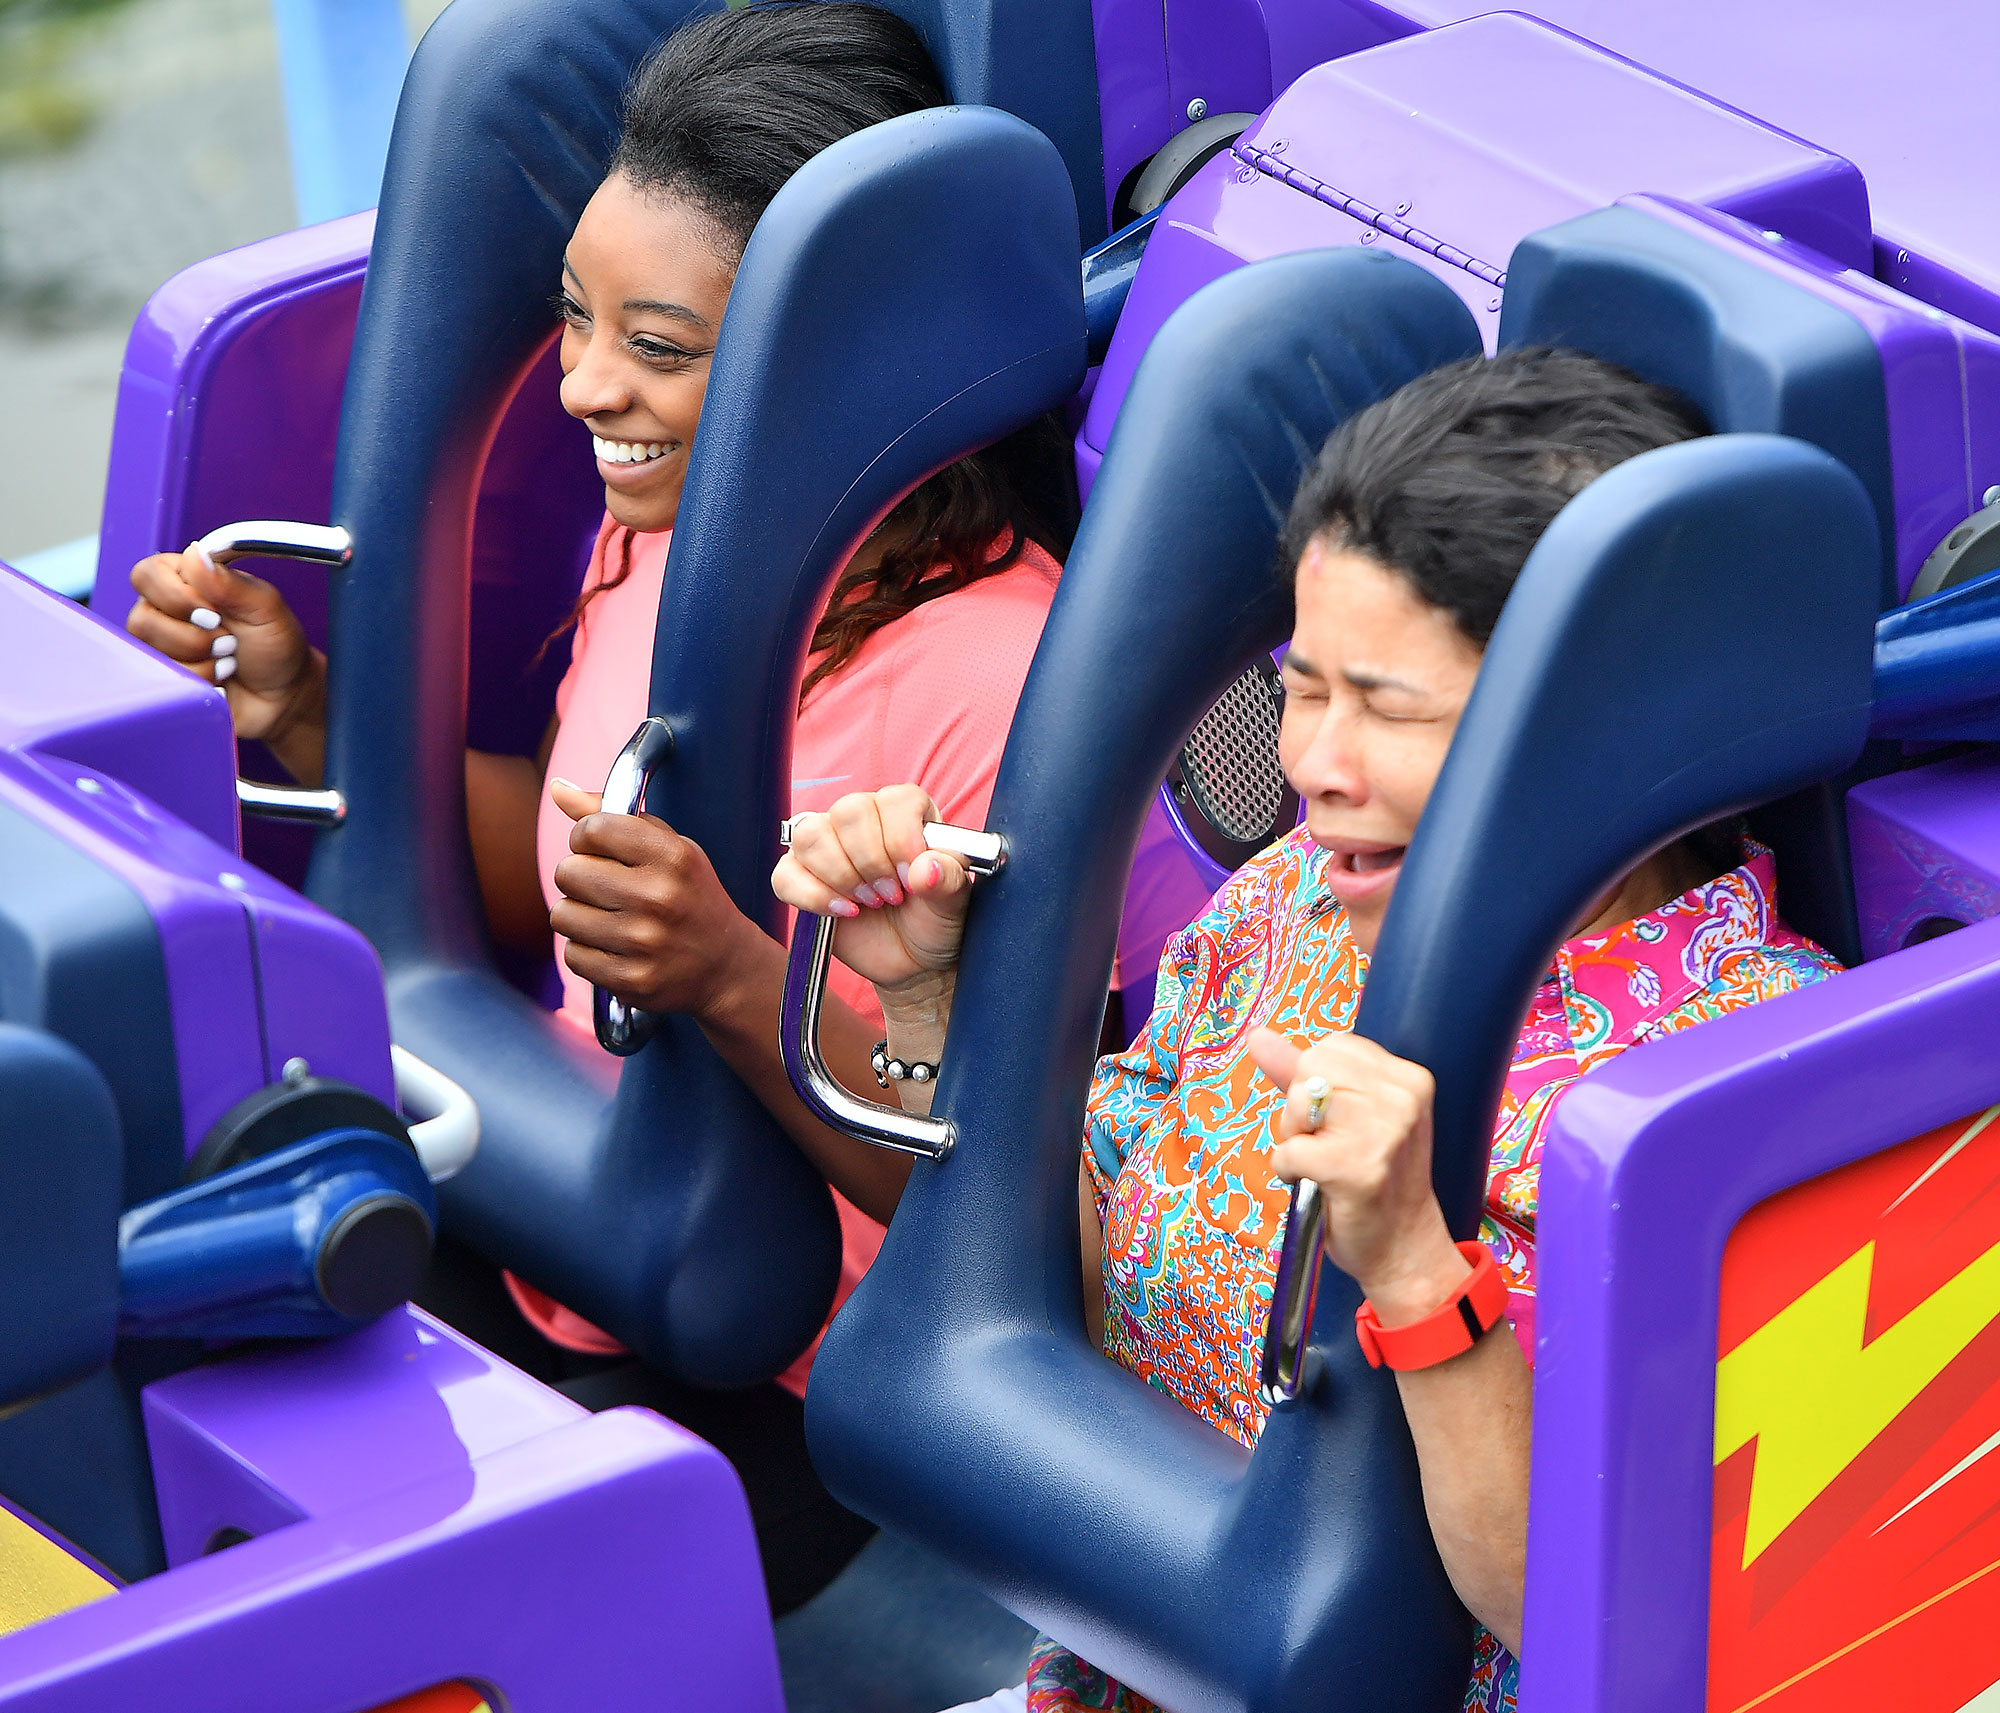 EXCLUSIVE: Gold Medalist Simone Biles enjoys a day at Disneyland with her family